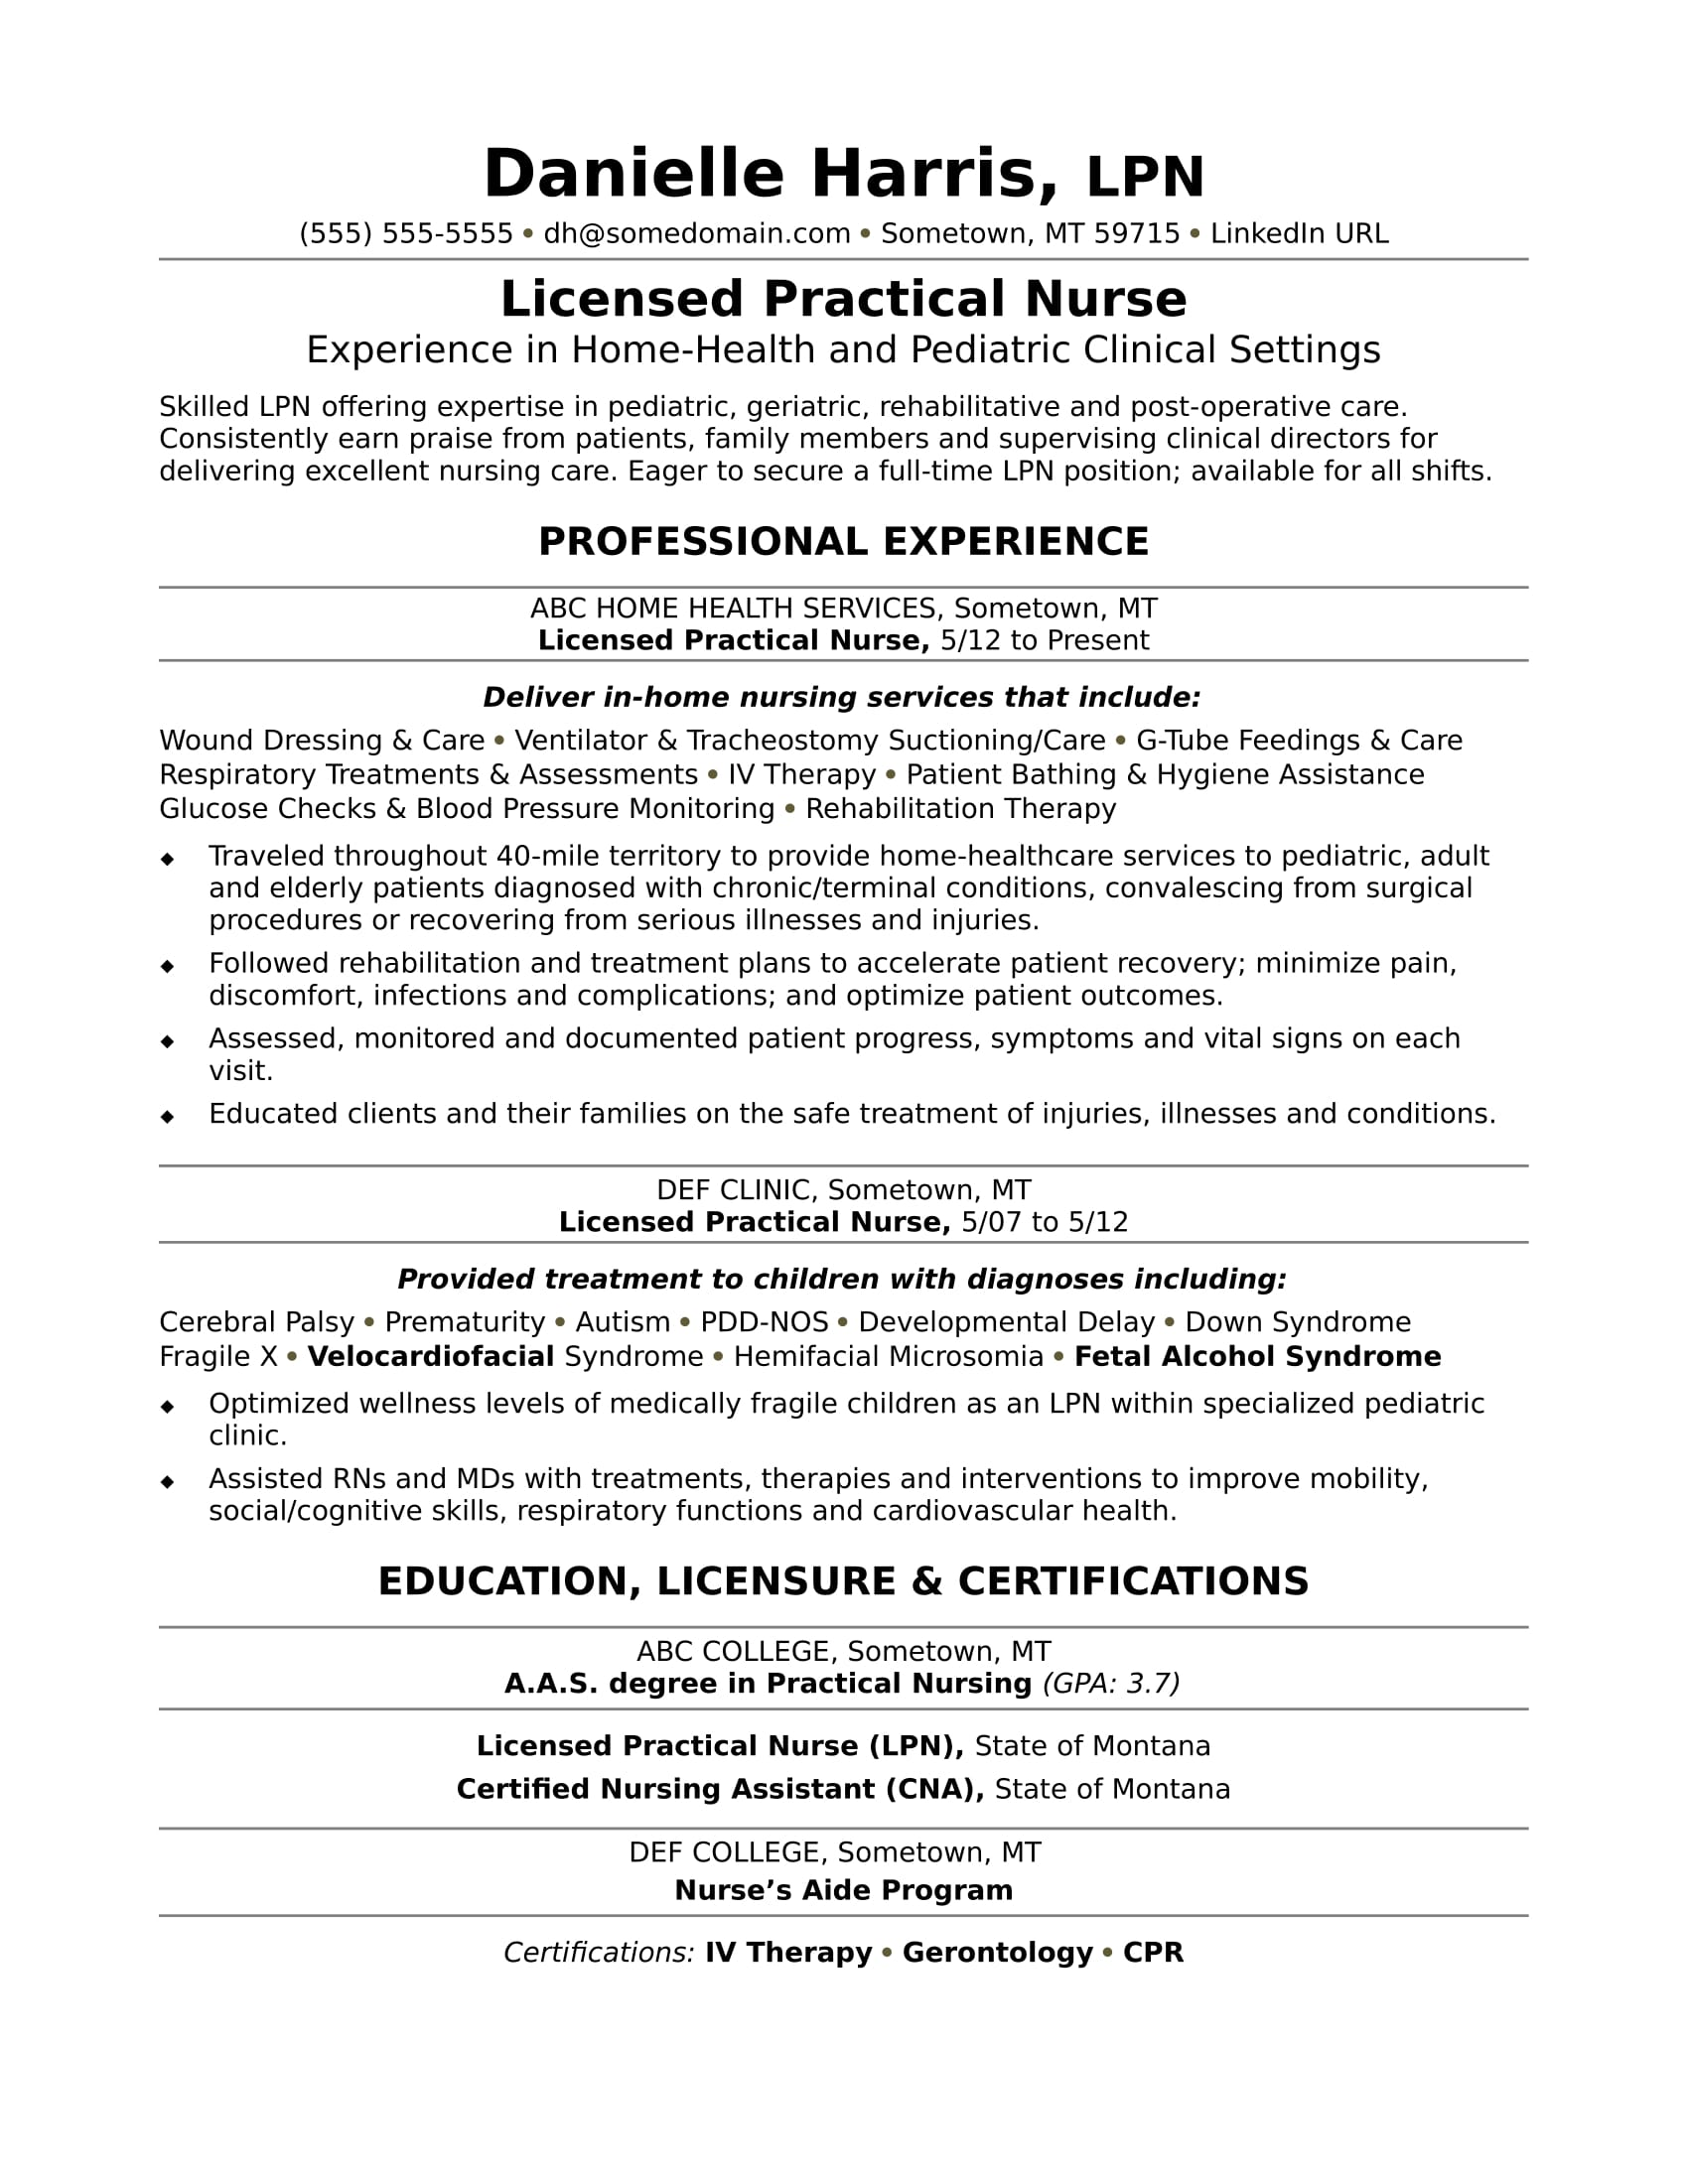 Wonderful Licensed Practical Nurse Resume Sample Regarding Lpn Resume Samples